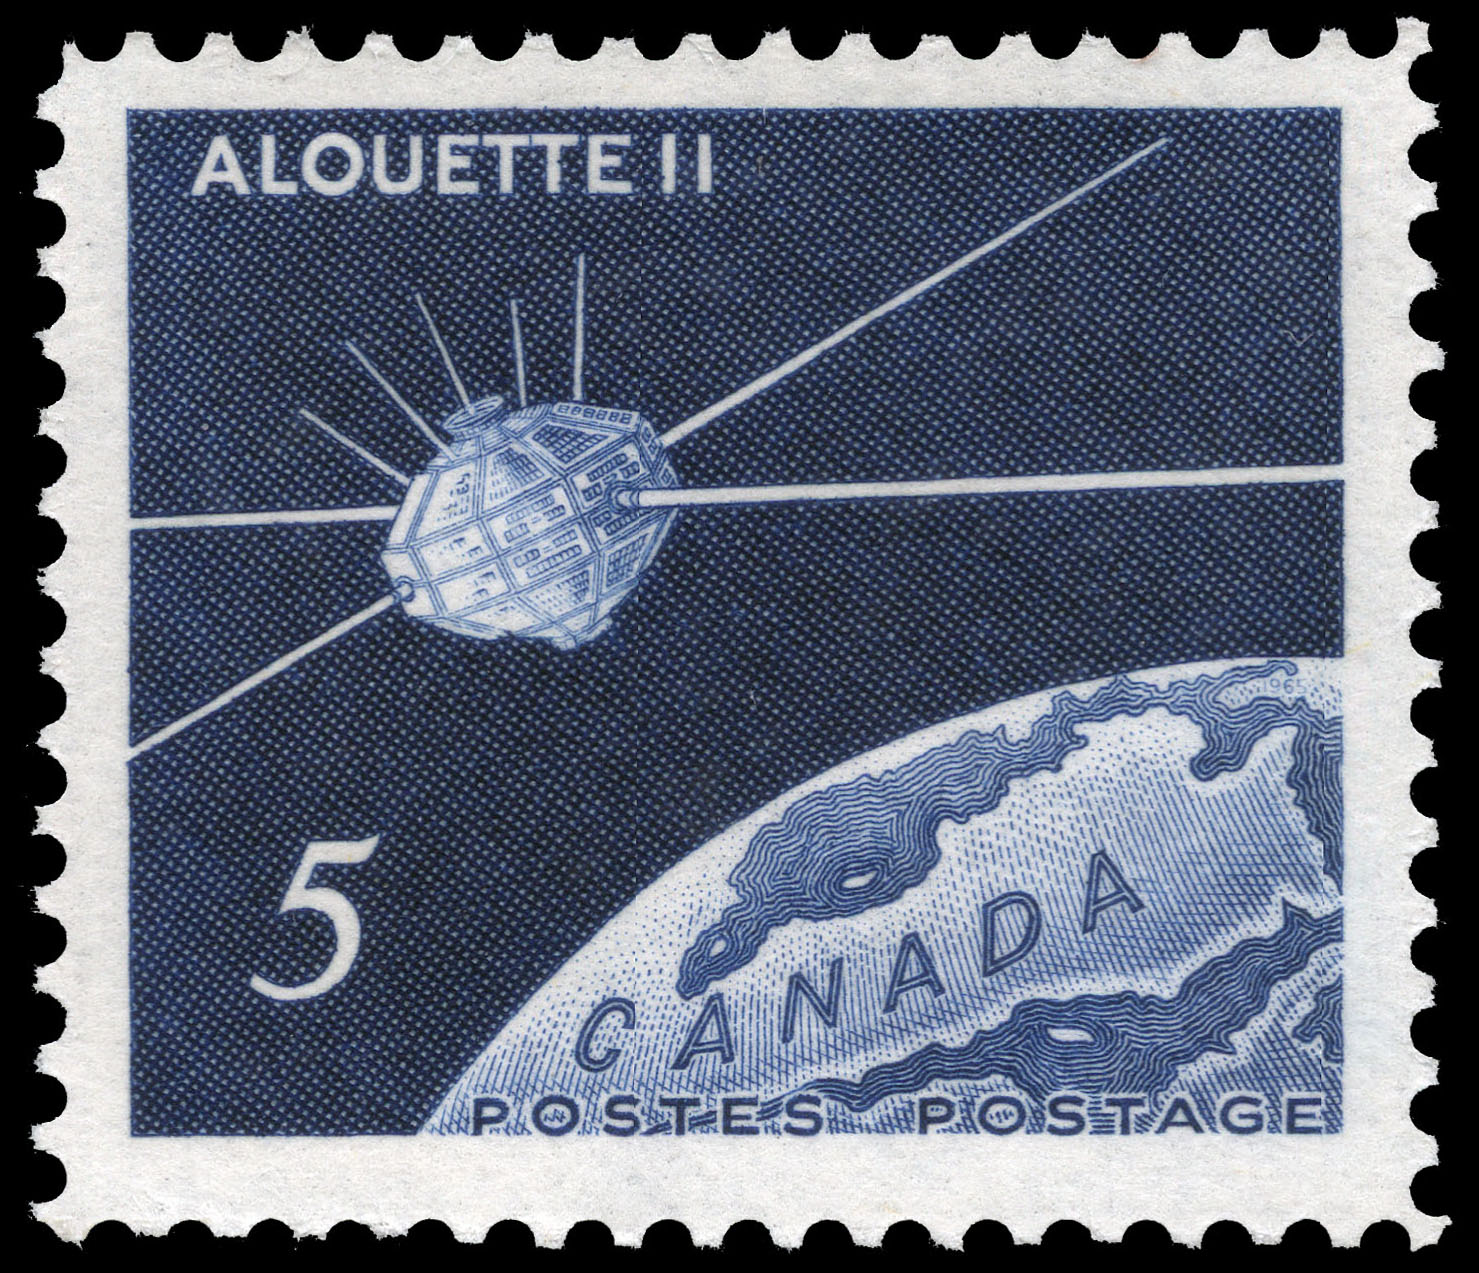 Alouette II Canada Postage Stamp